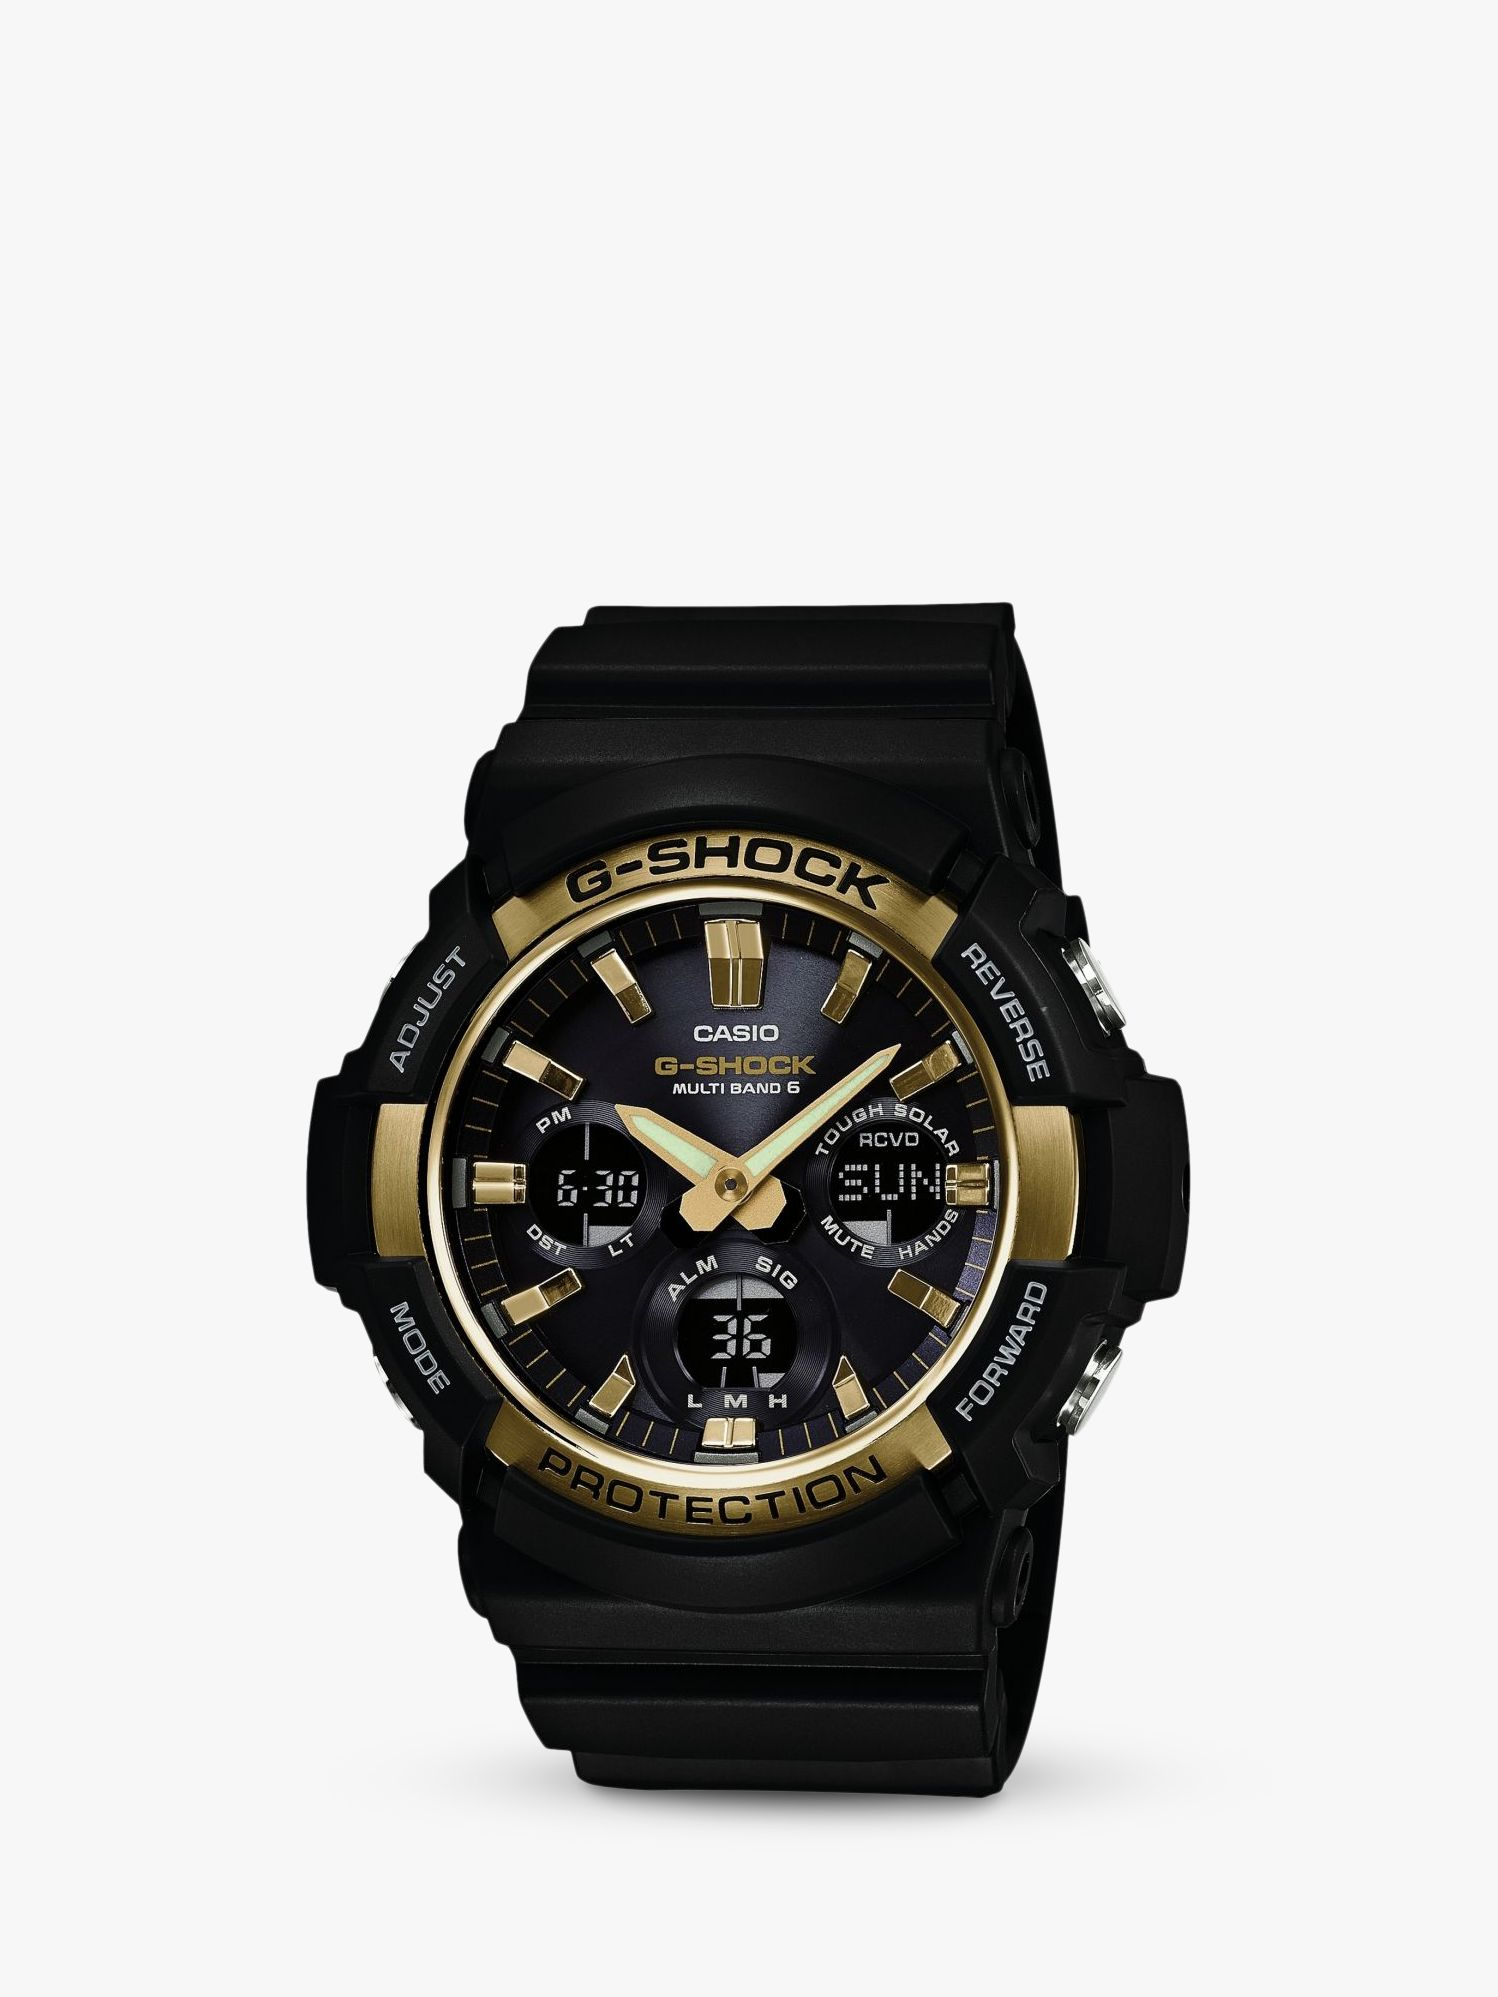 70c2bdfa78c Casio GAW-100G-1AER Men's G-Shock Day Resin Strap Watch, Black/Midnight  Blue at John Lewis & Partners